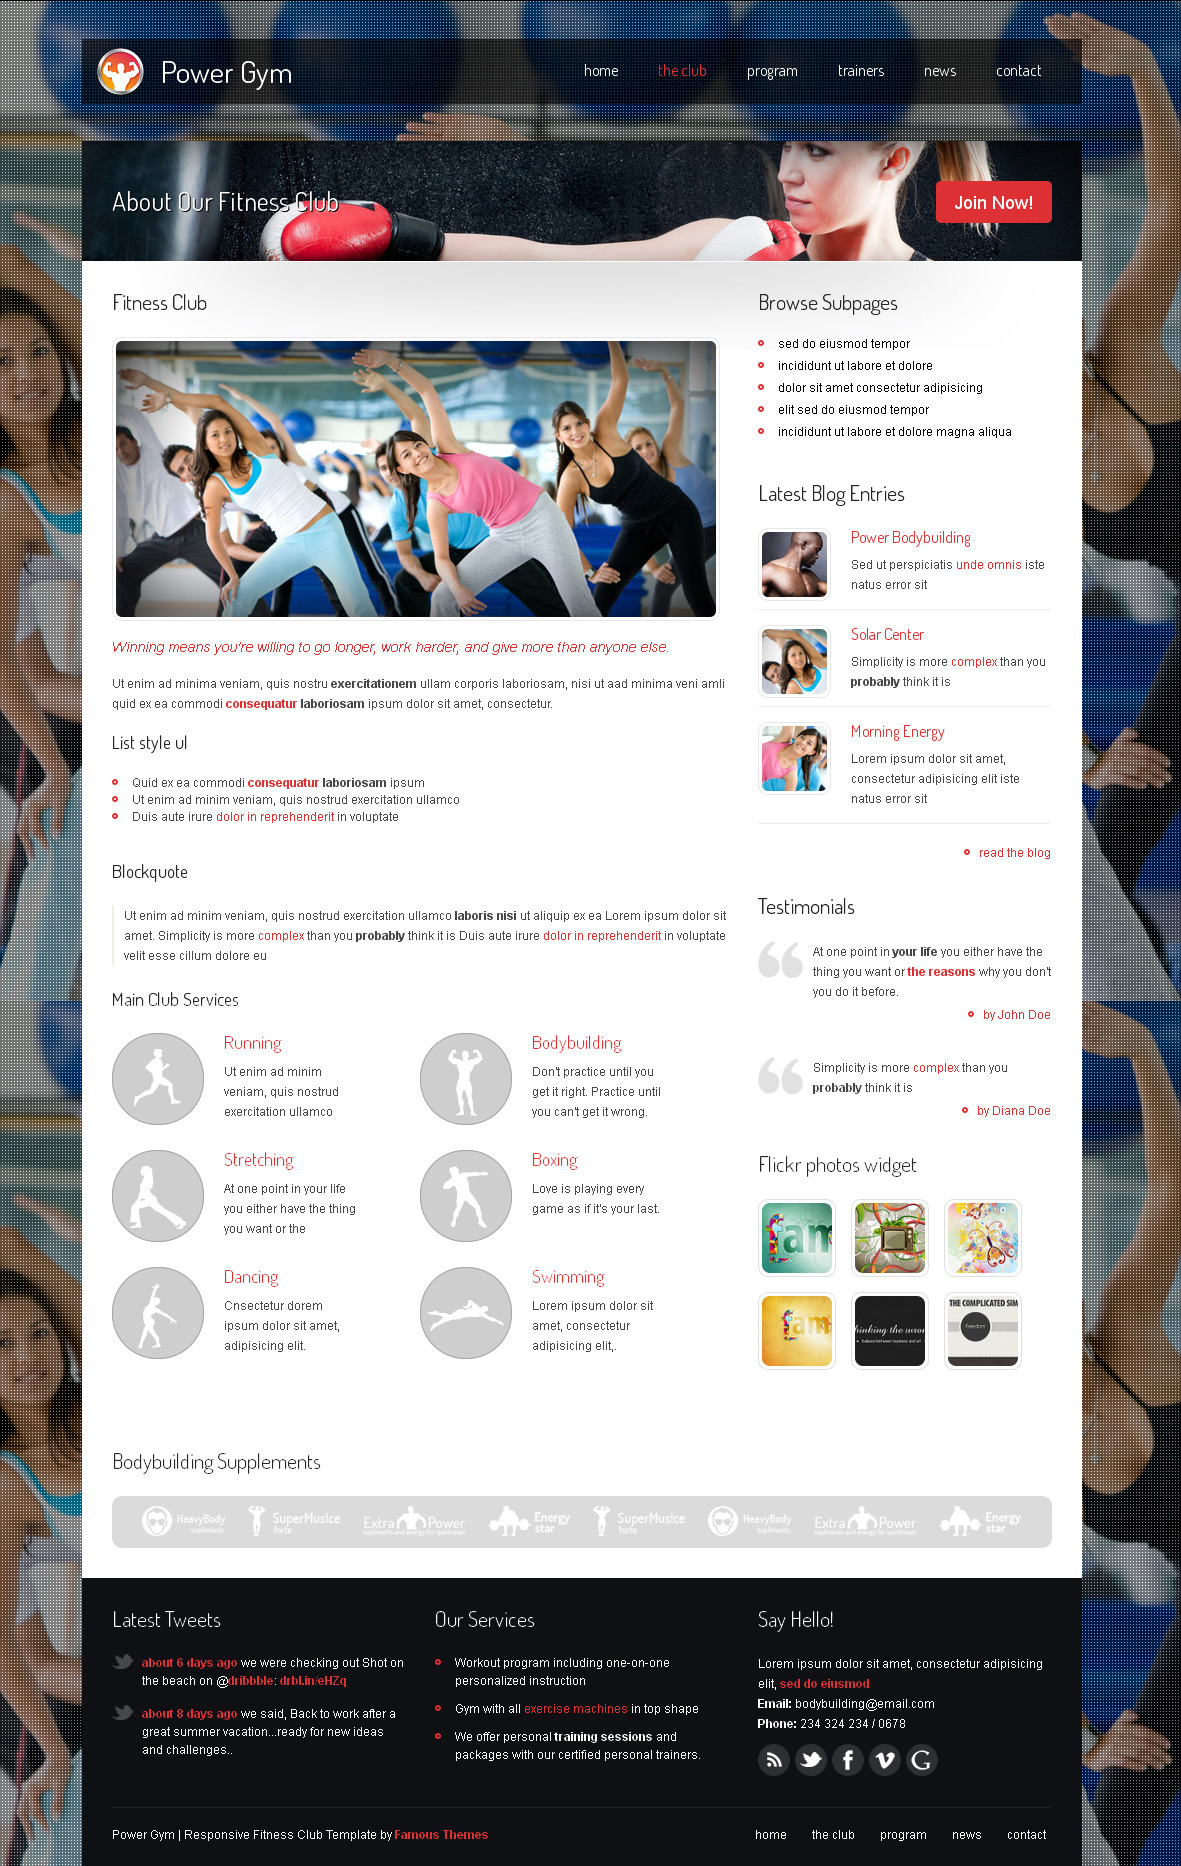 Power Gym - Responsive Wordpress Theme - details page design